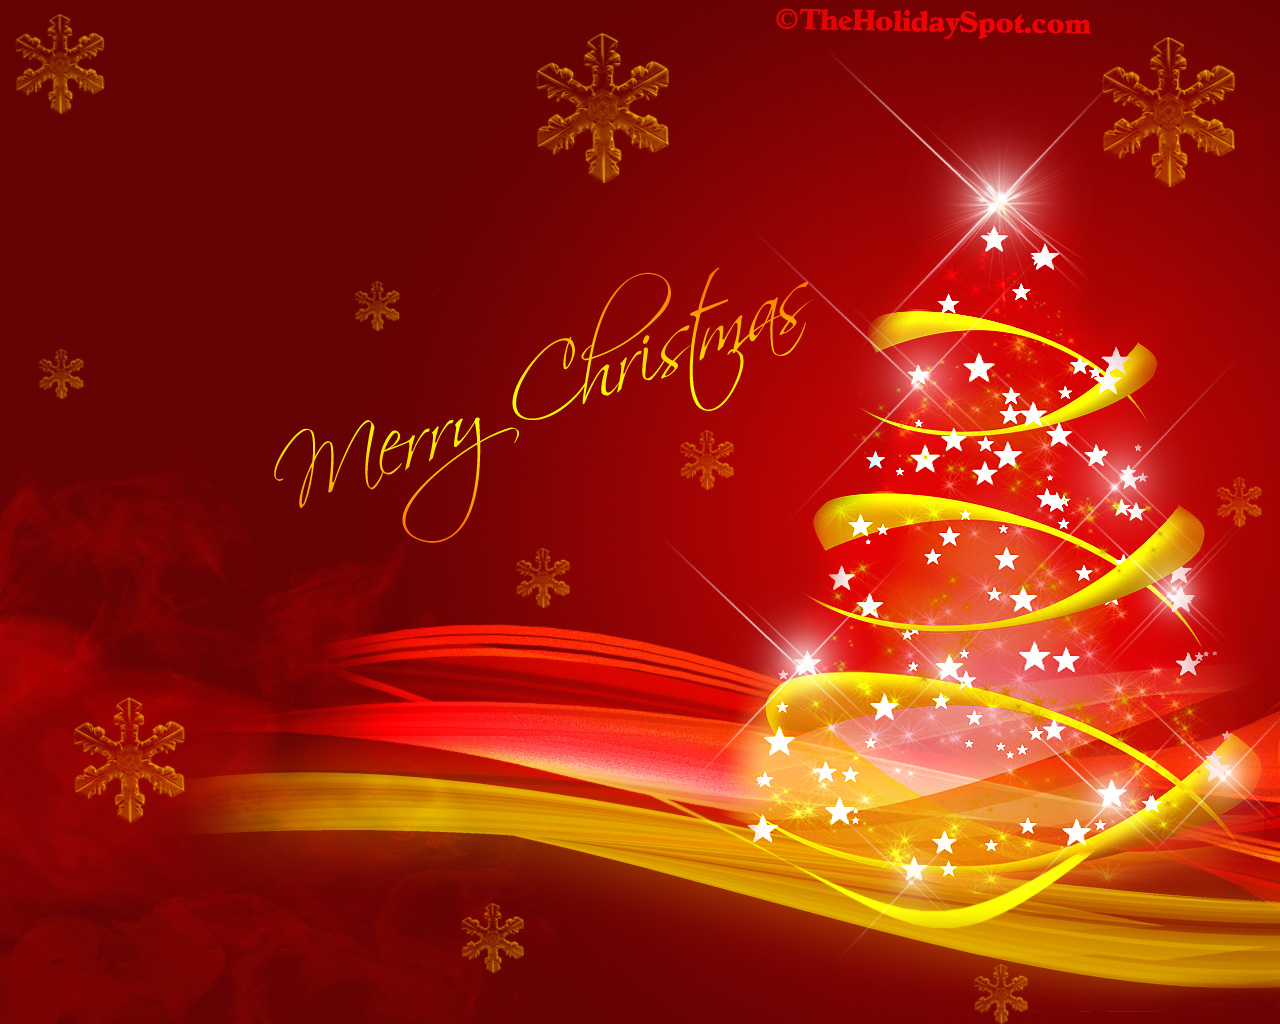 1280x1024 Christmas Wallpapers - 1280x1024 High quality Christmas tree ...